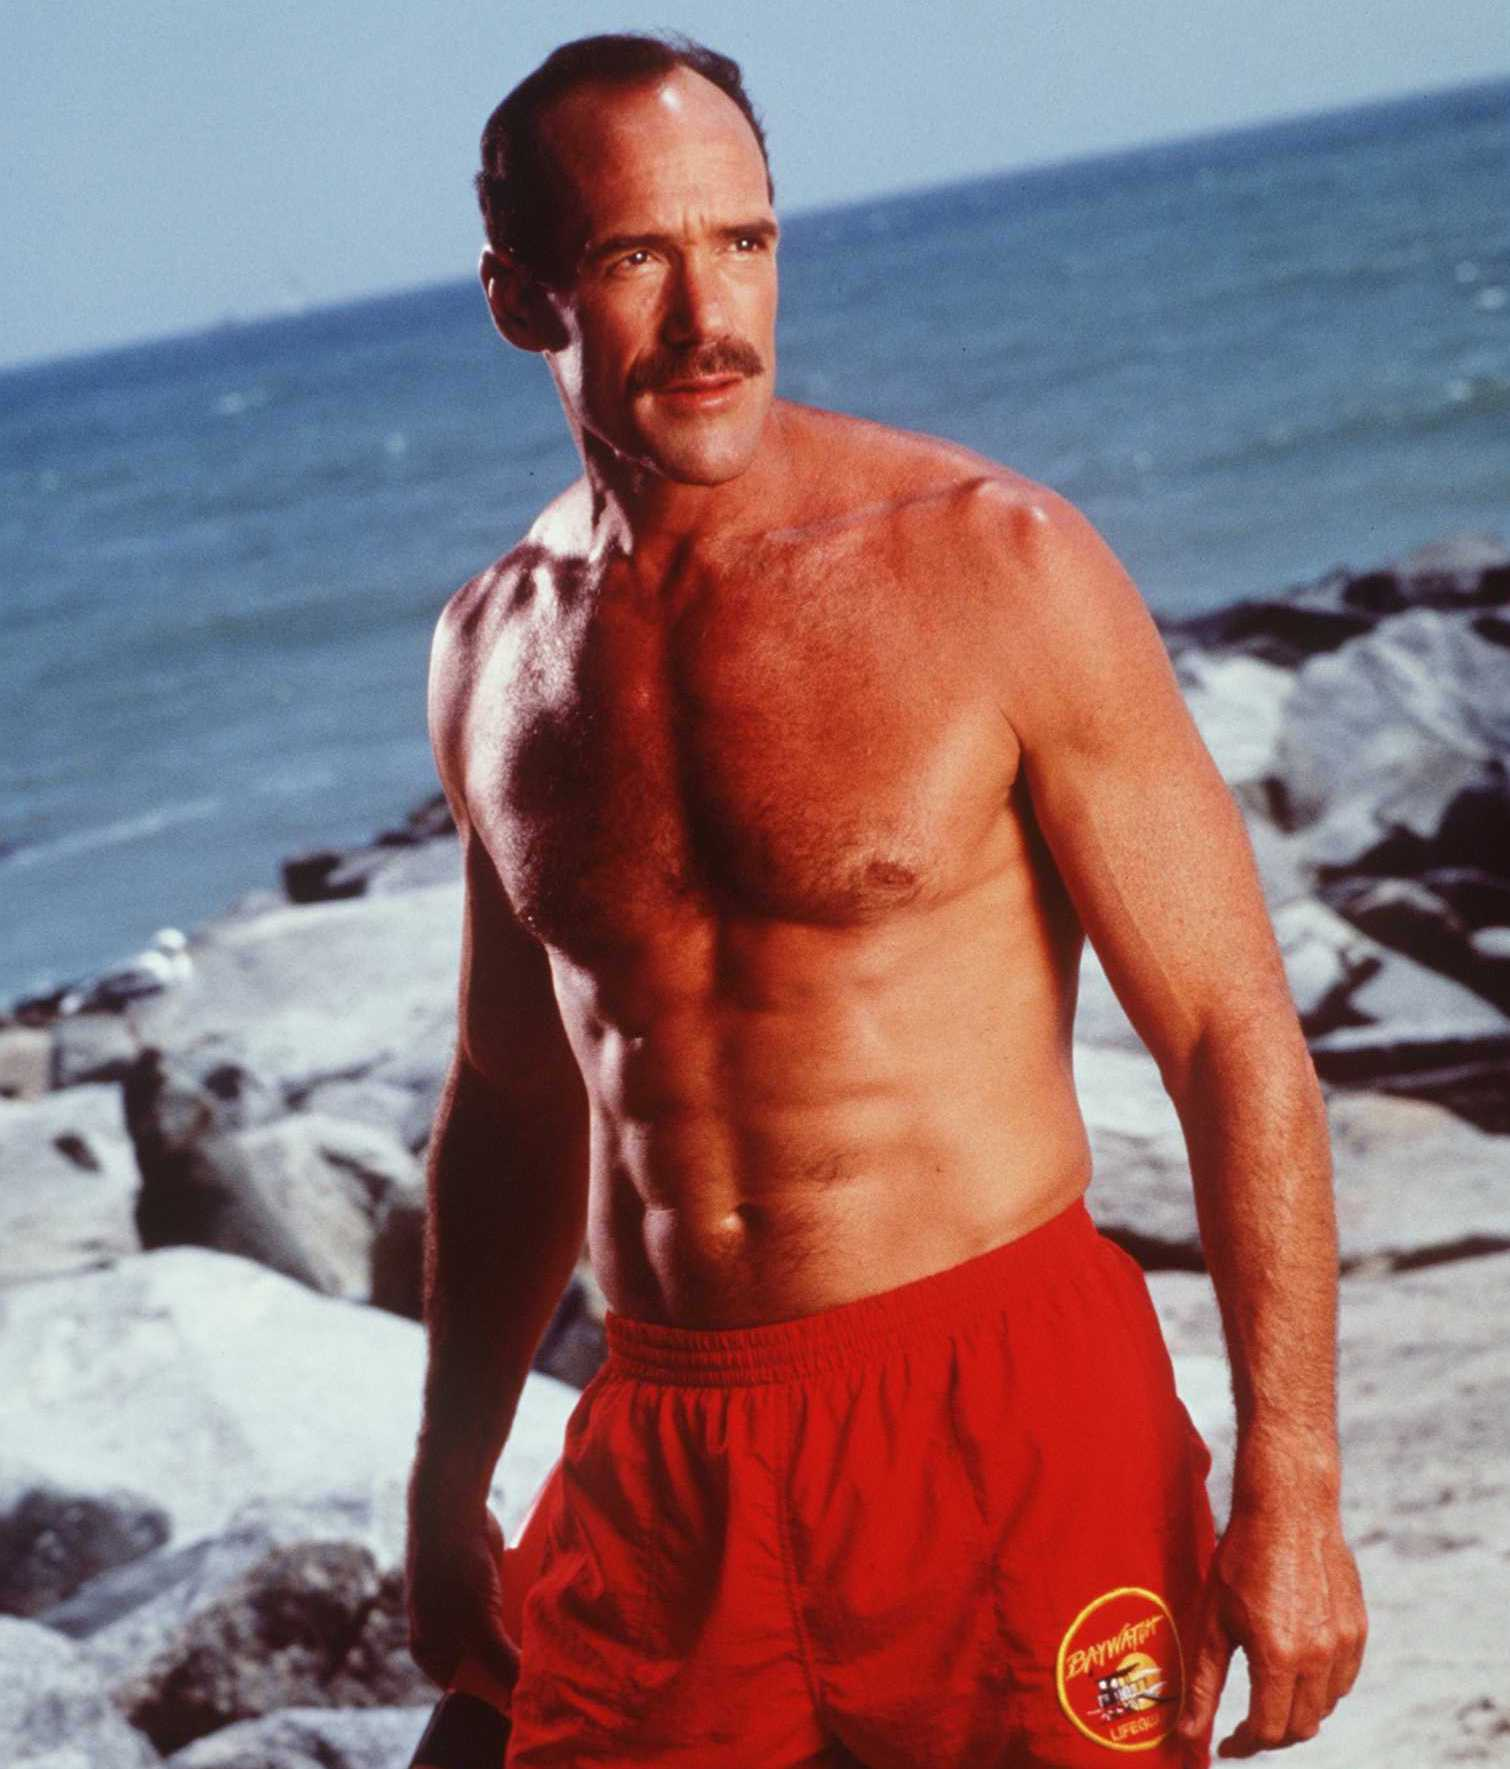 Michael Newman as Mike 'Newmie' Newman in Baywatch, 1997